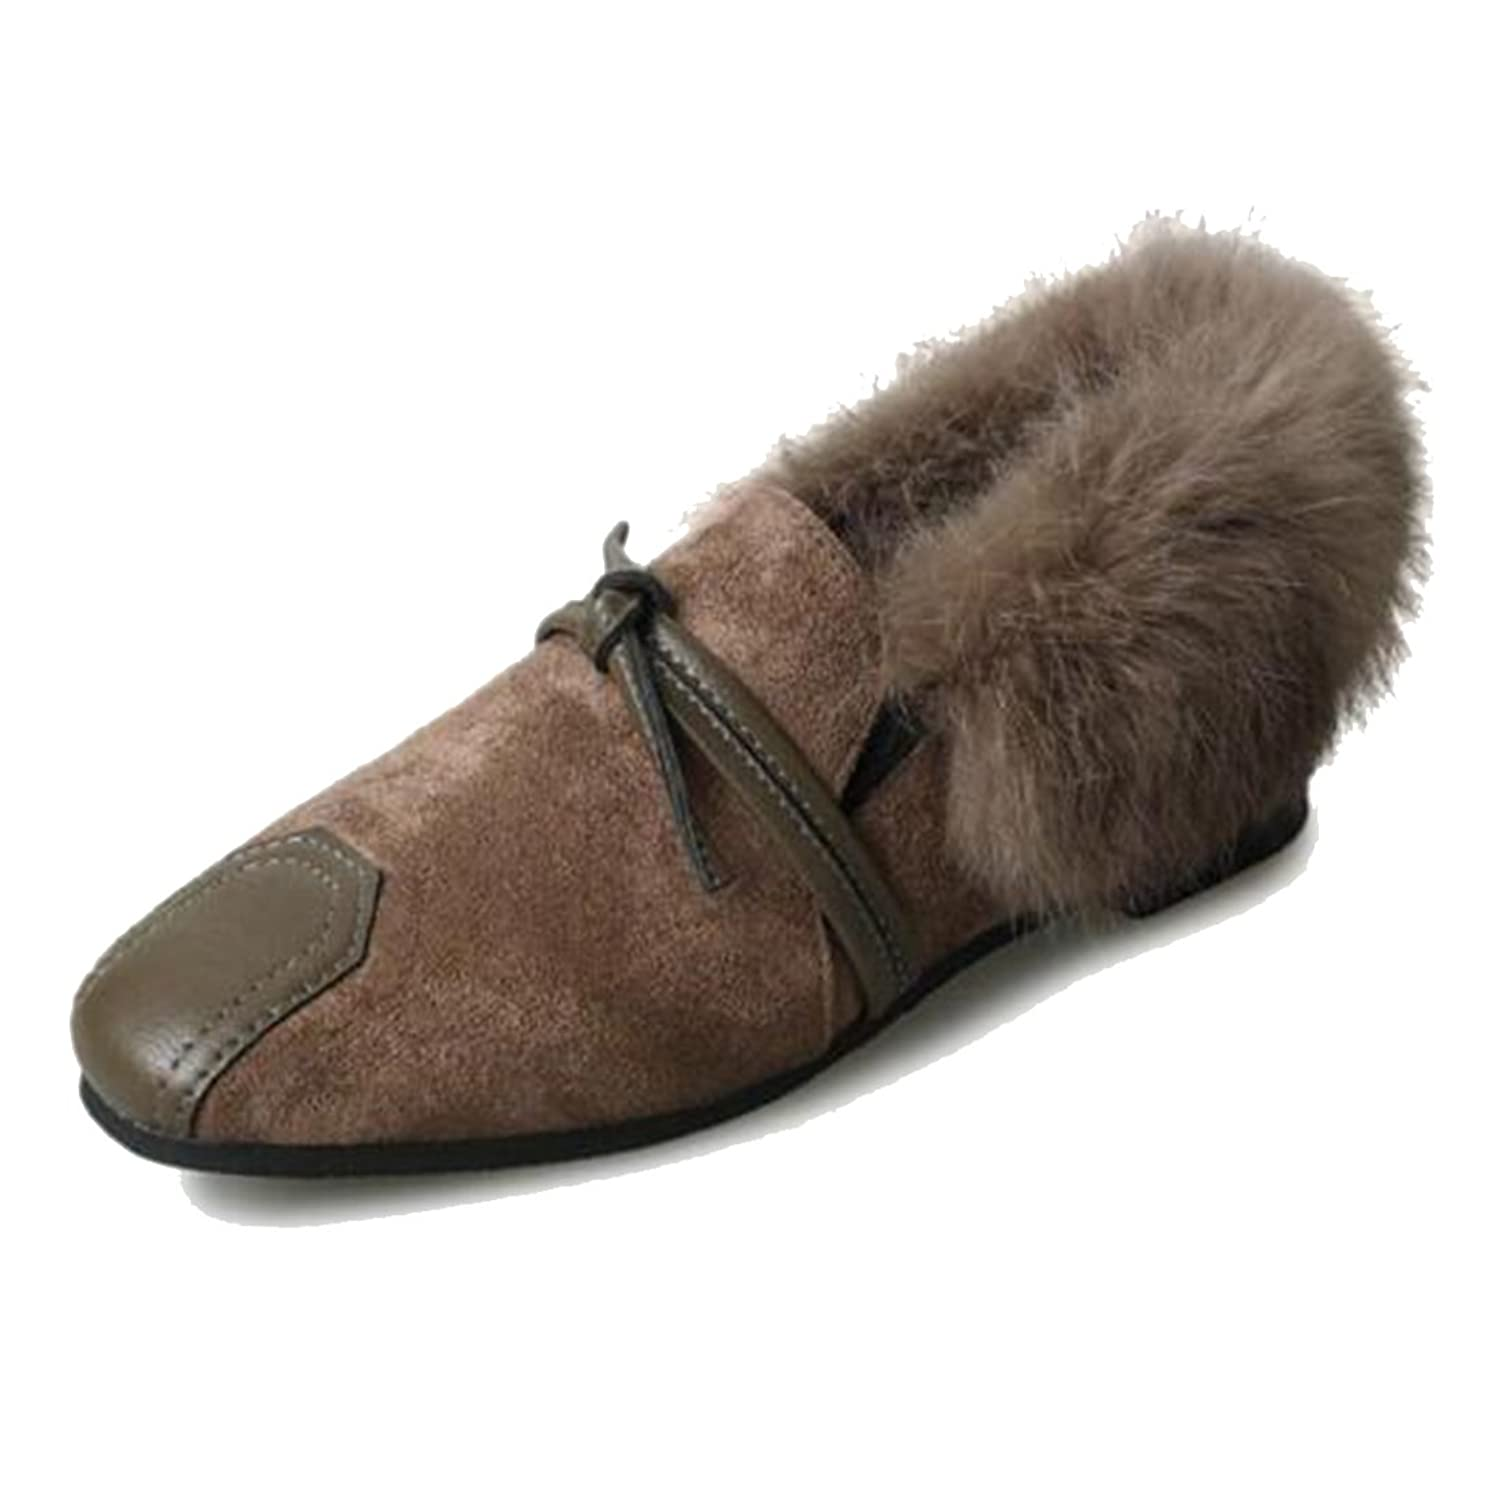 COVOYYAR Women's Fluzzy Loafers Solid Autumn Winter Flats Fur Lined Casual Shoes